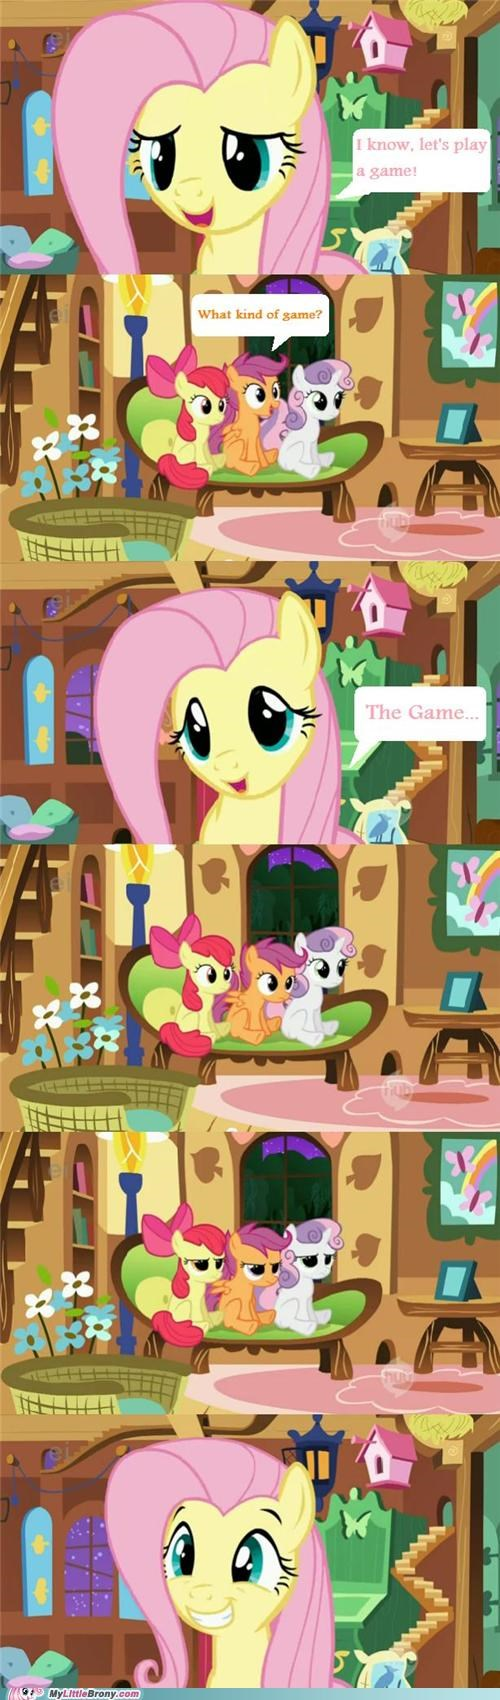 comics cutie mark crusaders fluttershy the game - 5106065920